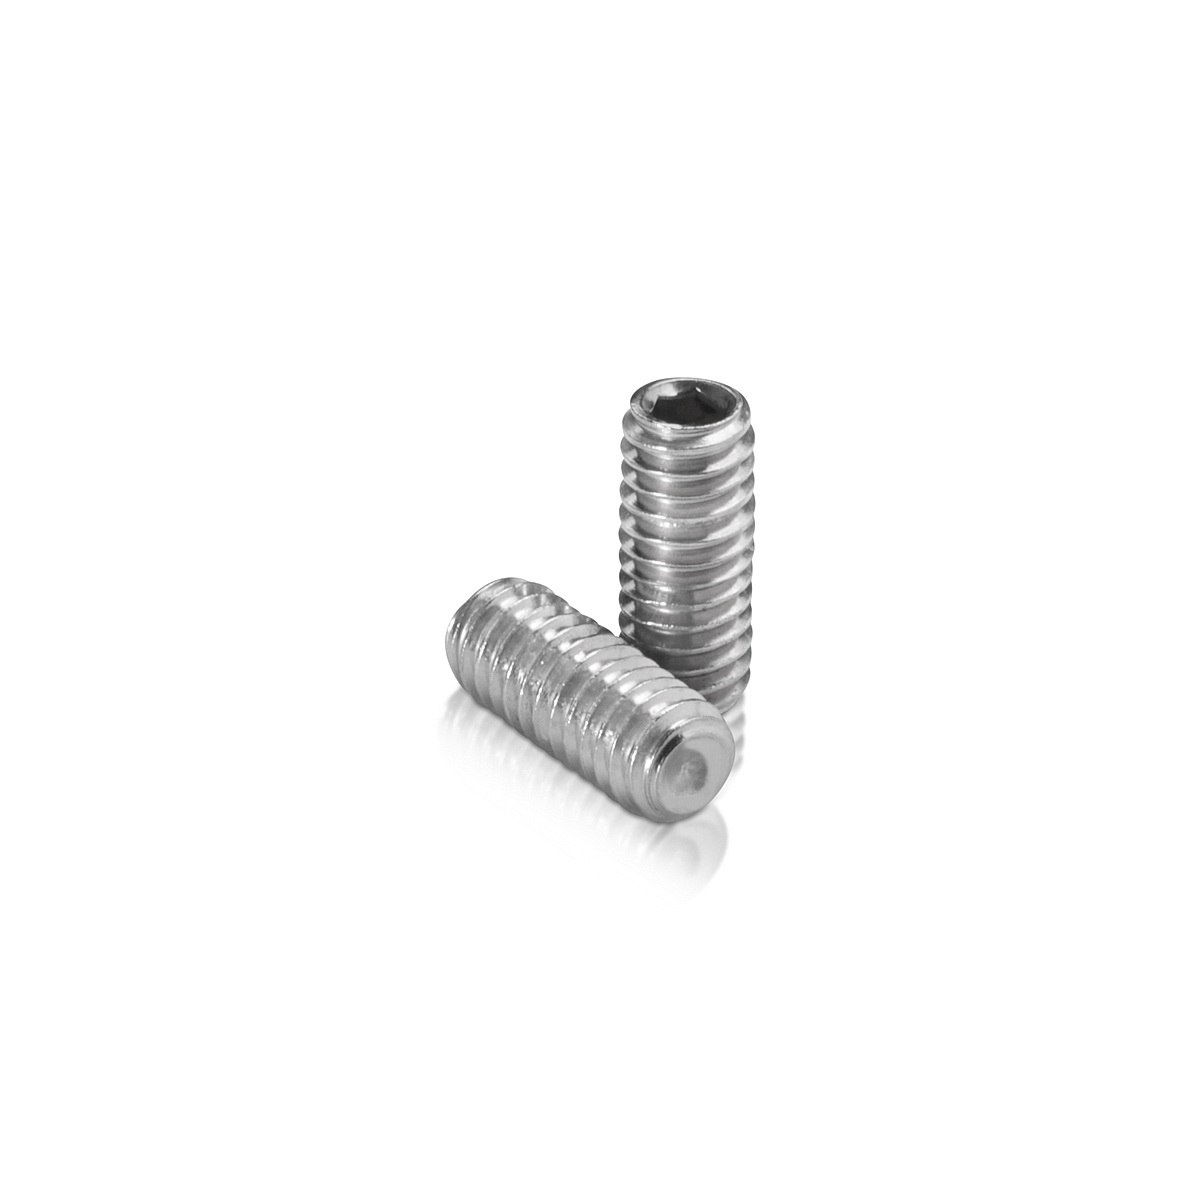 Stainless Steel Stud 5/16-18 Threaded, Length: 3/4''